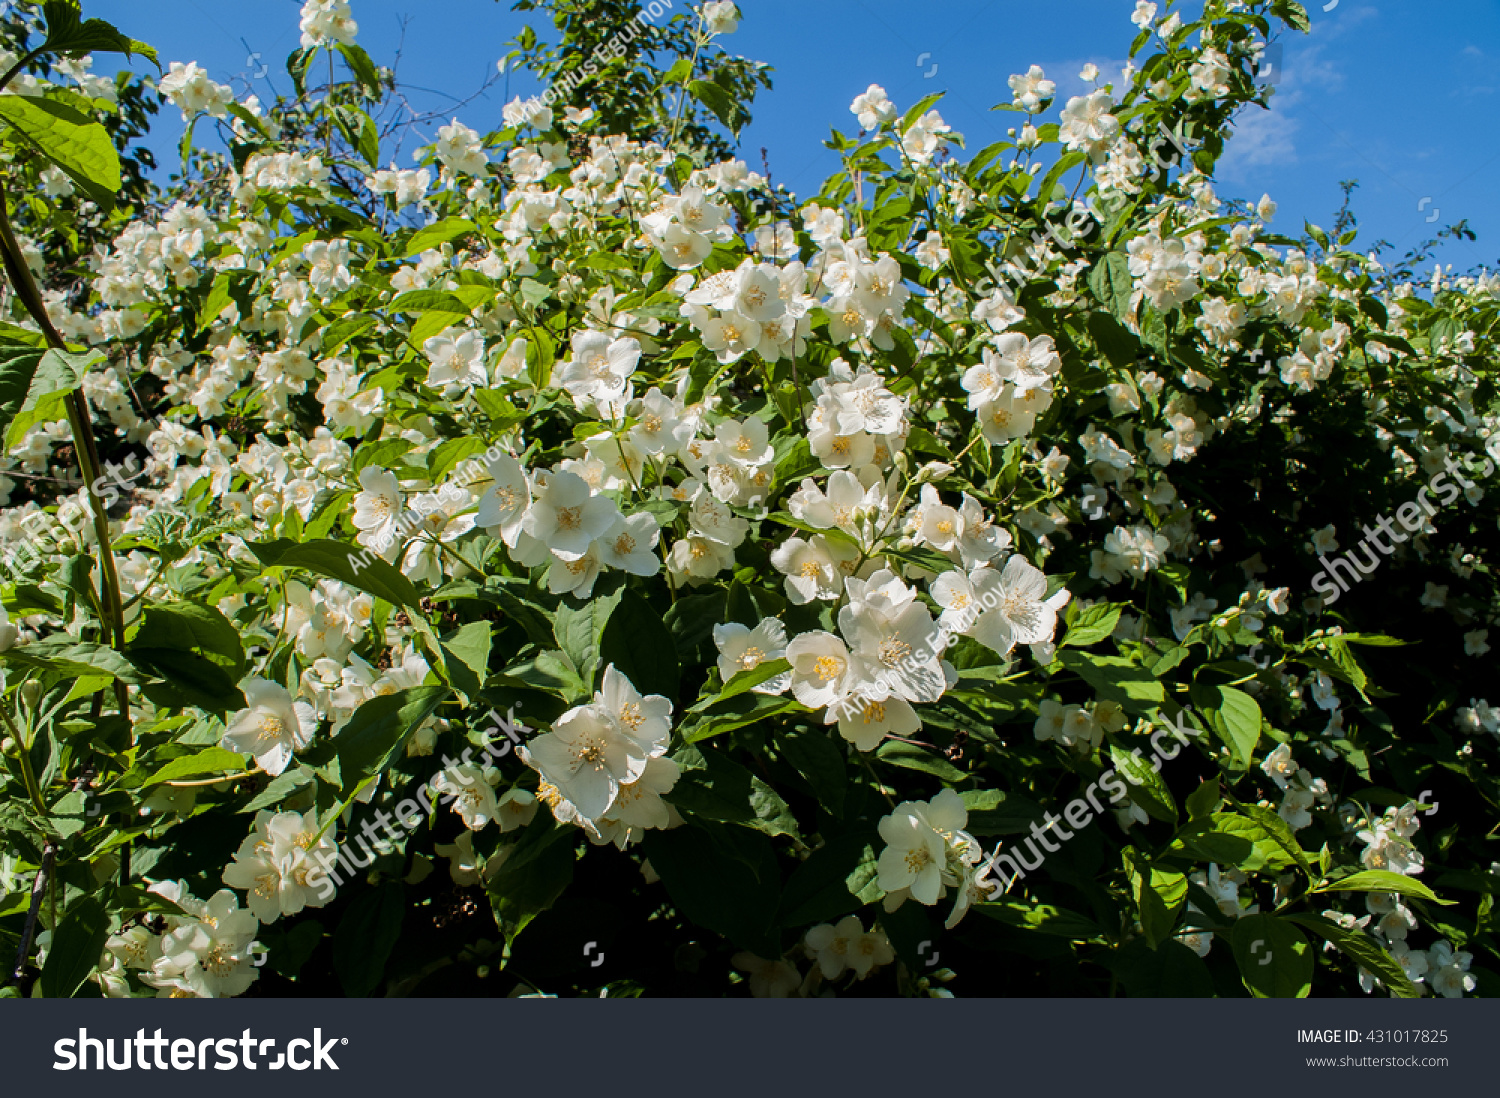 Flowering Shrub Small Fragrant White Flowers Stock Photo Edit Now